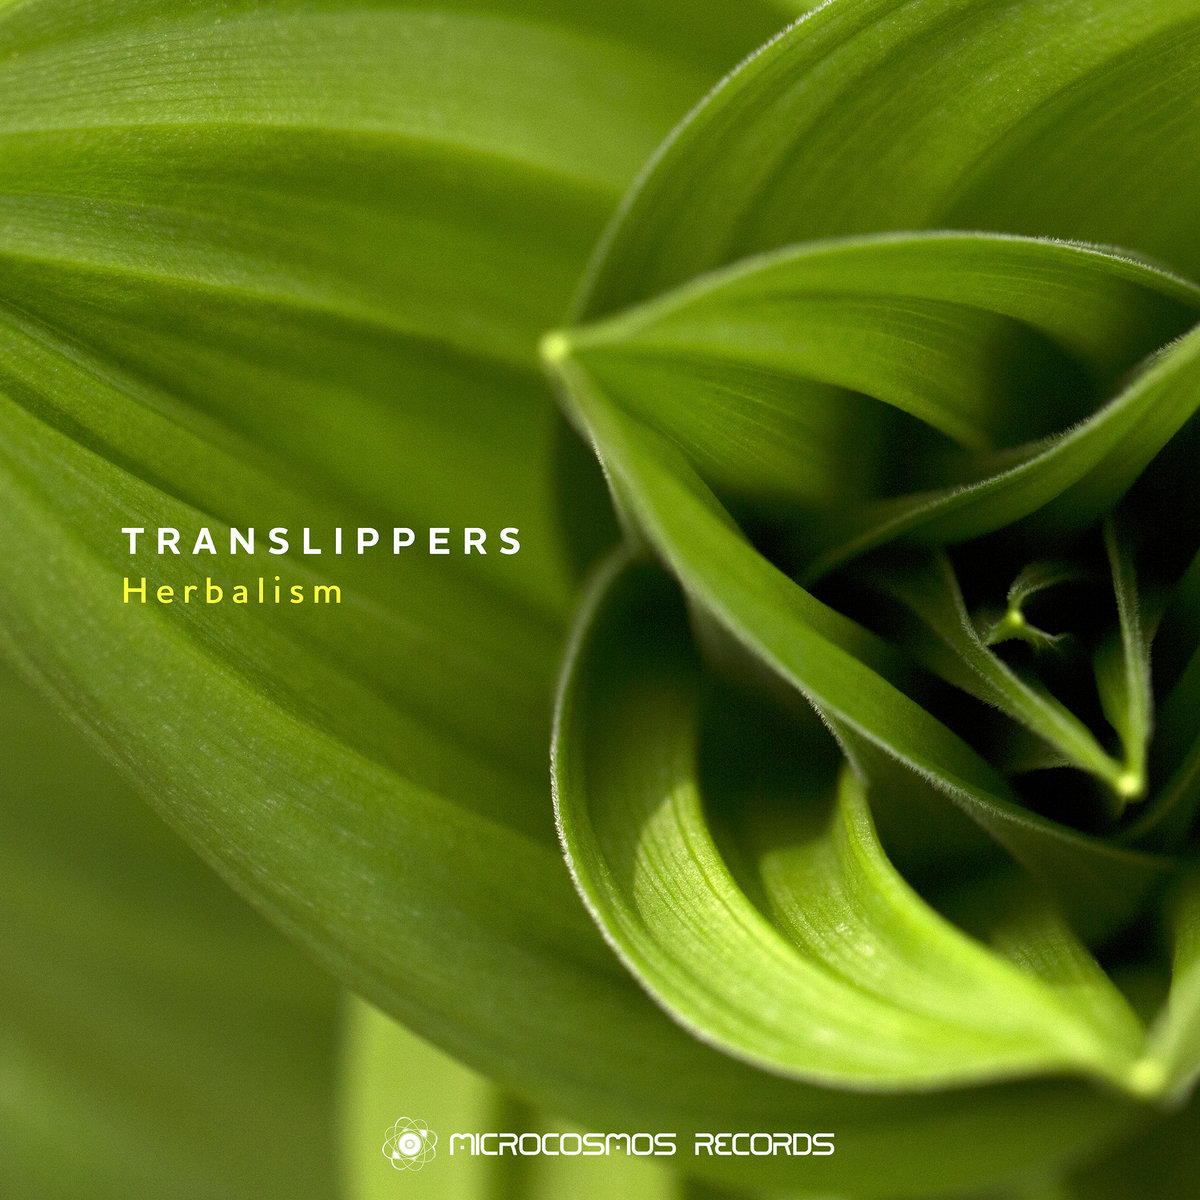 Translippers - Polar Lights @ 'Herbalism' album (ambient, chill-out)